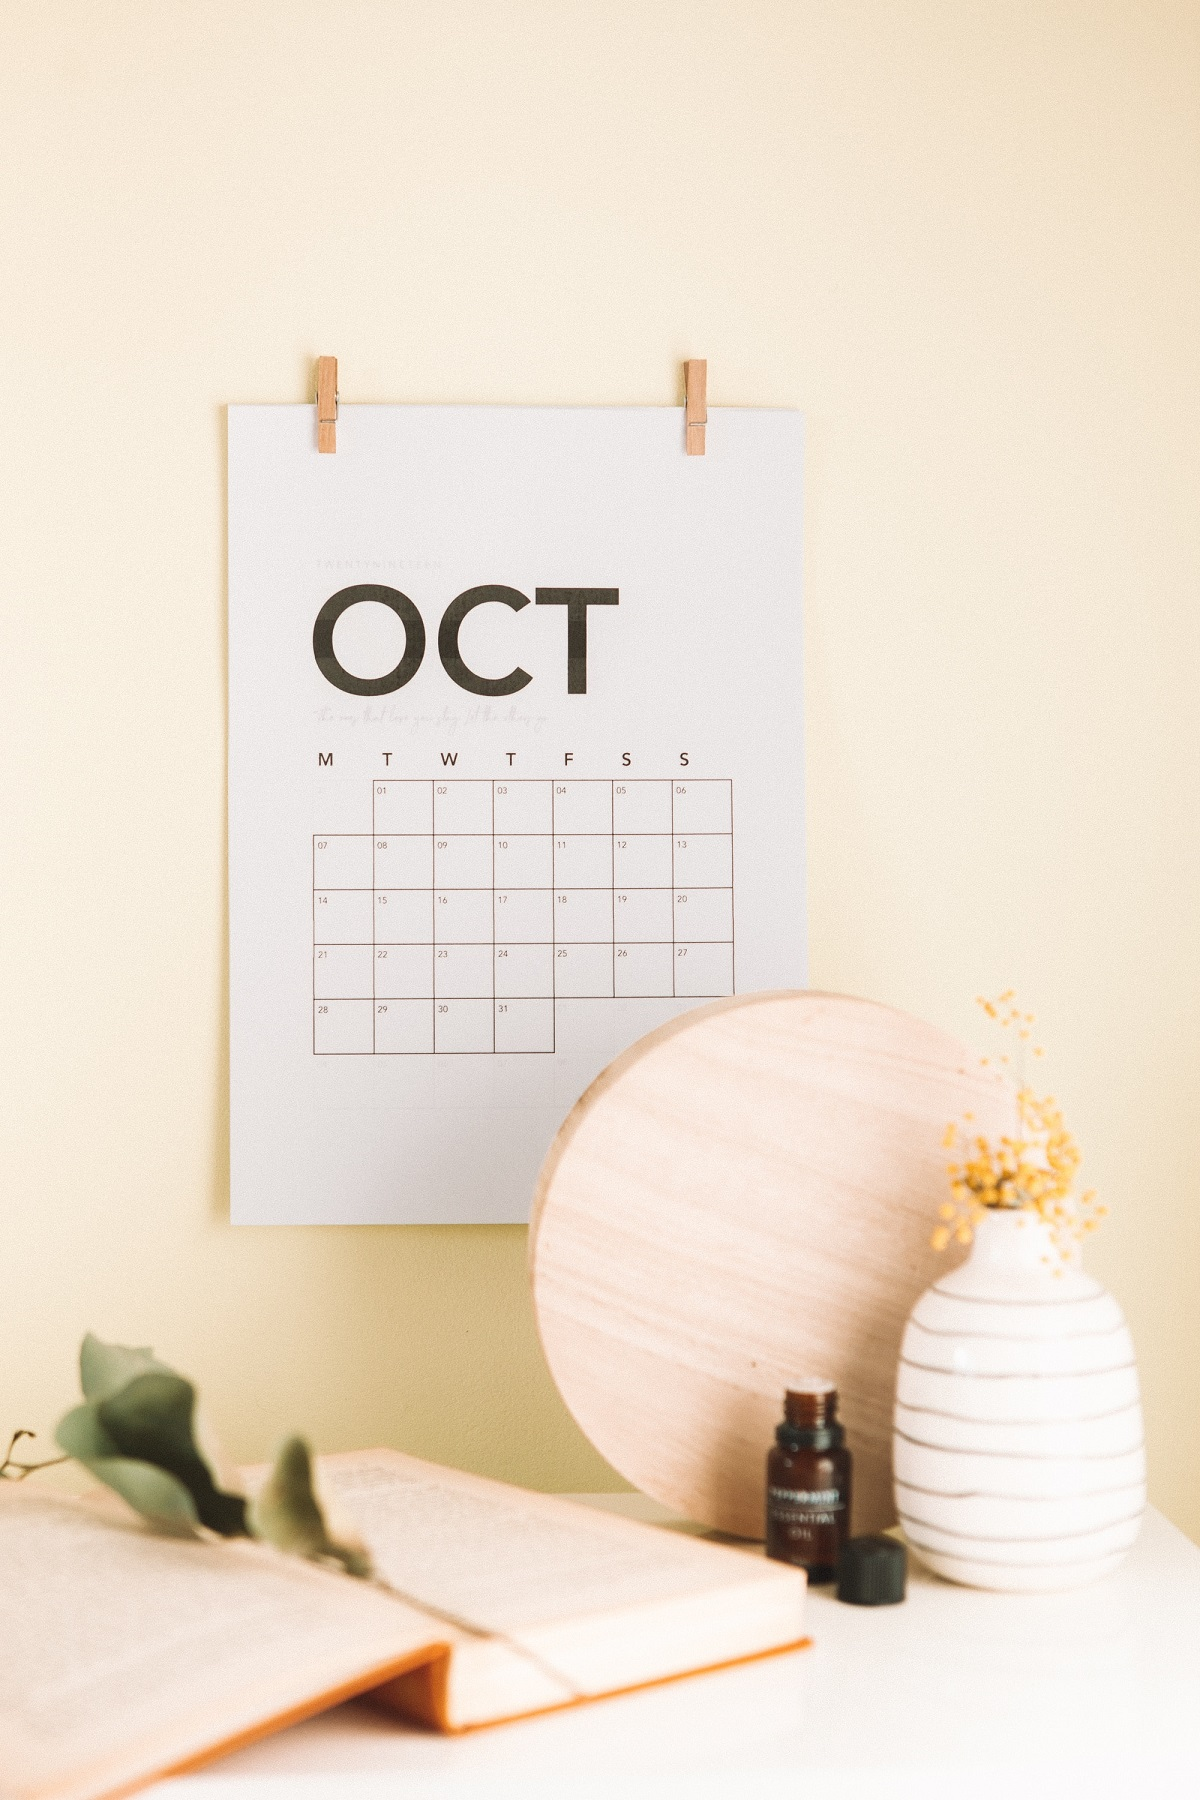 October calendar for Jean-Luc Andriot blog 093019